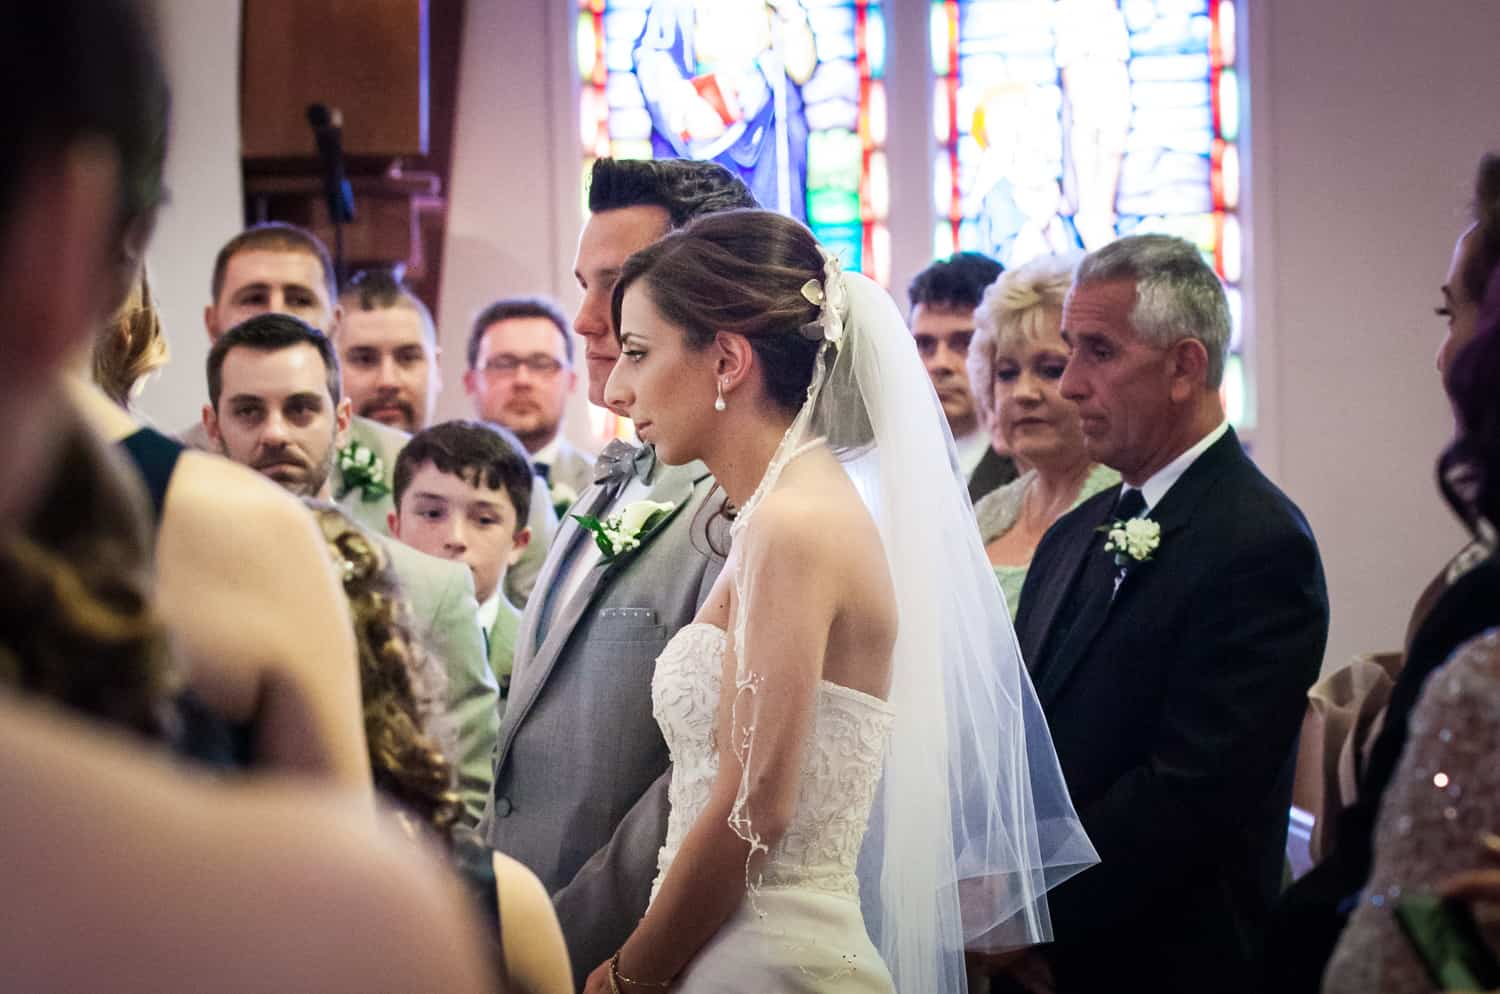 Bride and groom in front of guests in Eastern Orthodox wedding ceremony